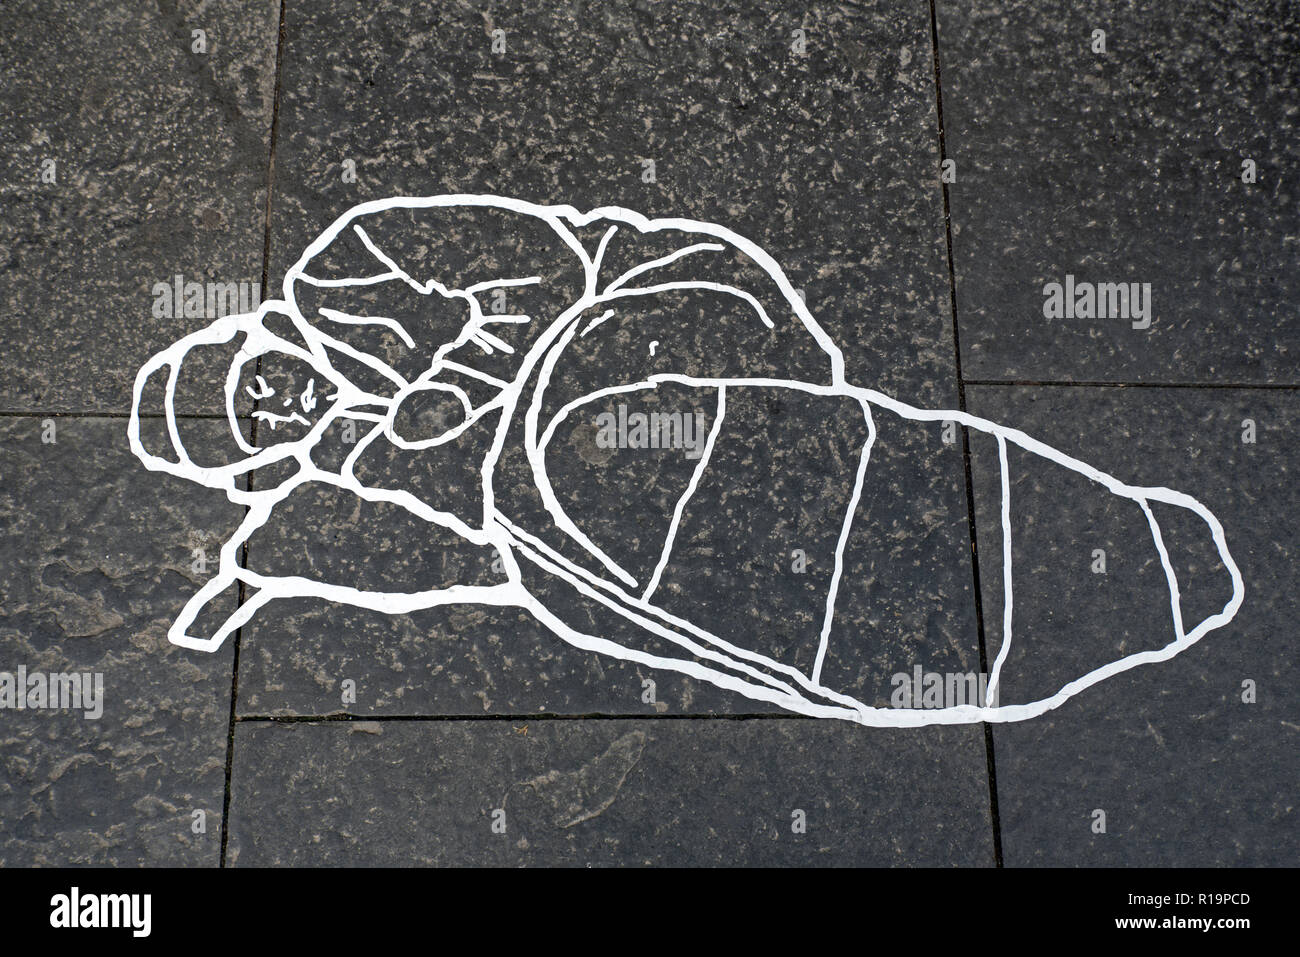 Edinburgh, Royal Mile,  10th November 2018. An anonymous street artist makes a statement about homelessness in the form of a 'reserved' area with line markings in the shape of a homeless person on The Royal Mile, Edinburgh, Scotland, UK. - Stock Image